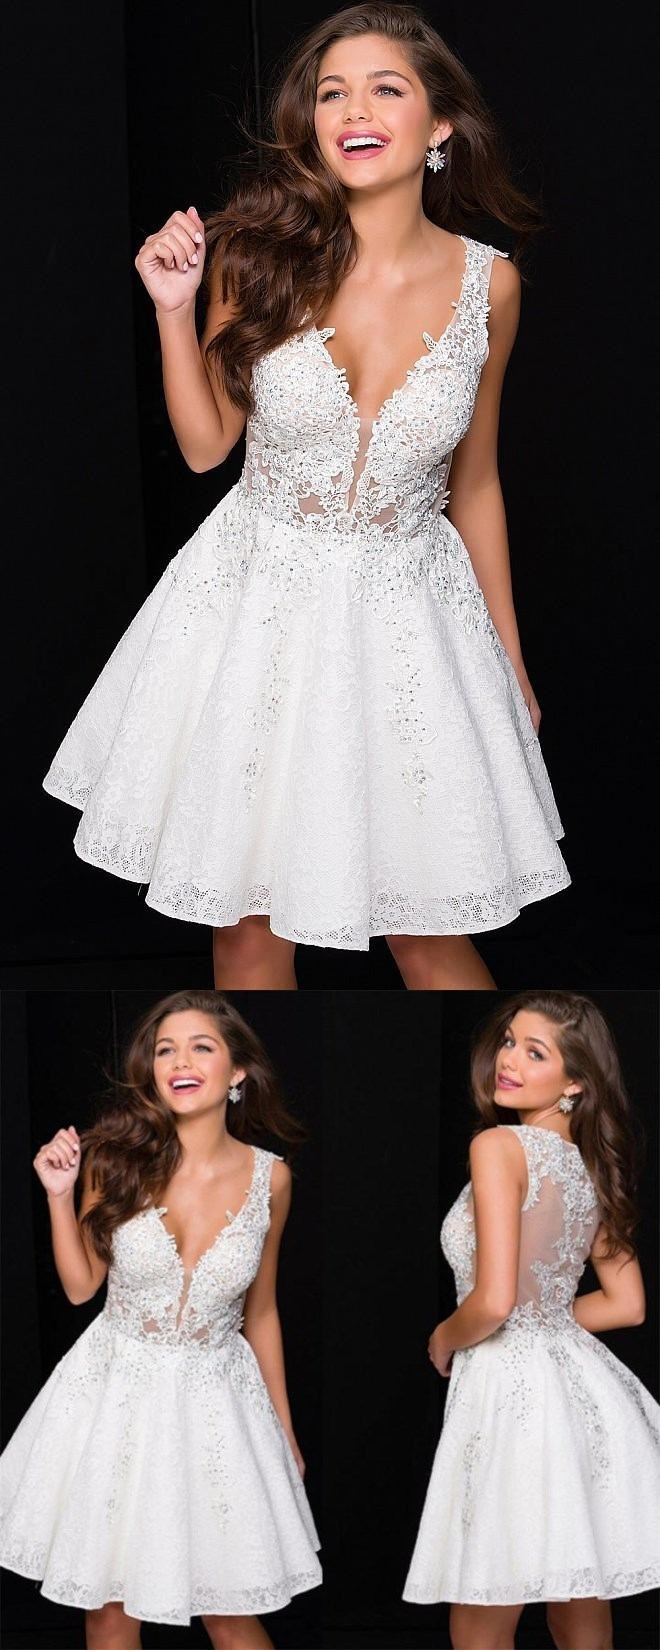 Newest Deep V-neck White lace beading homecoming dresses, short/mini prom